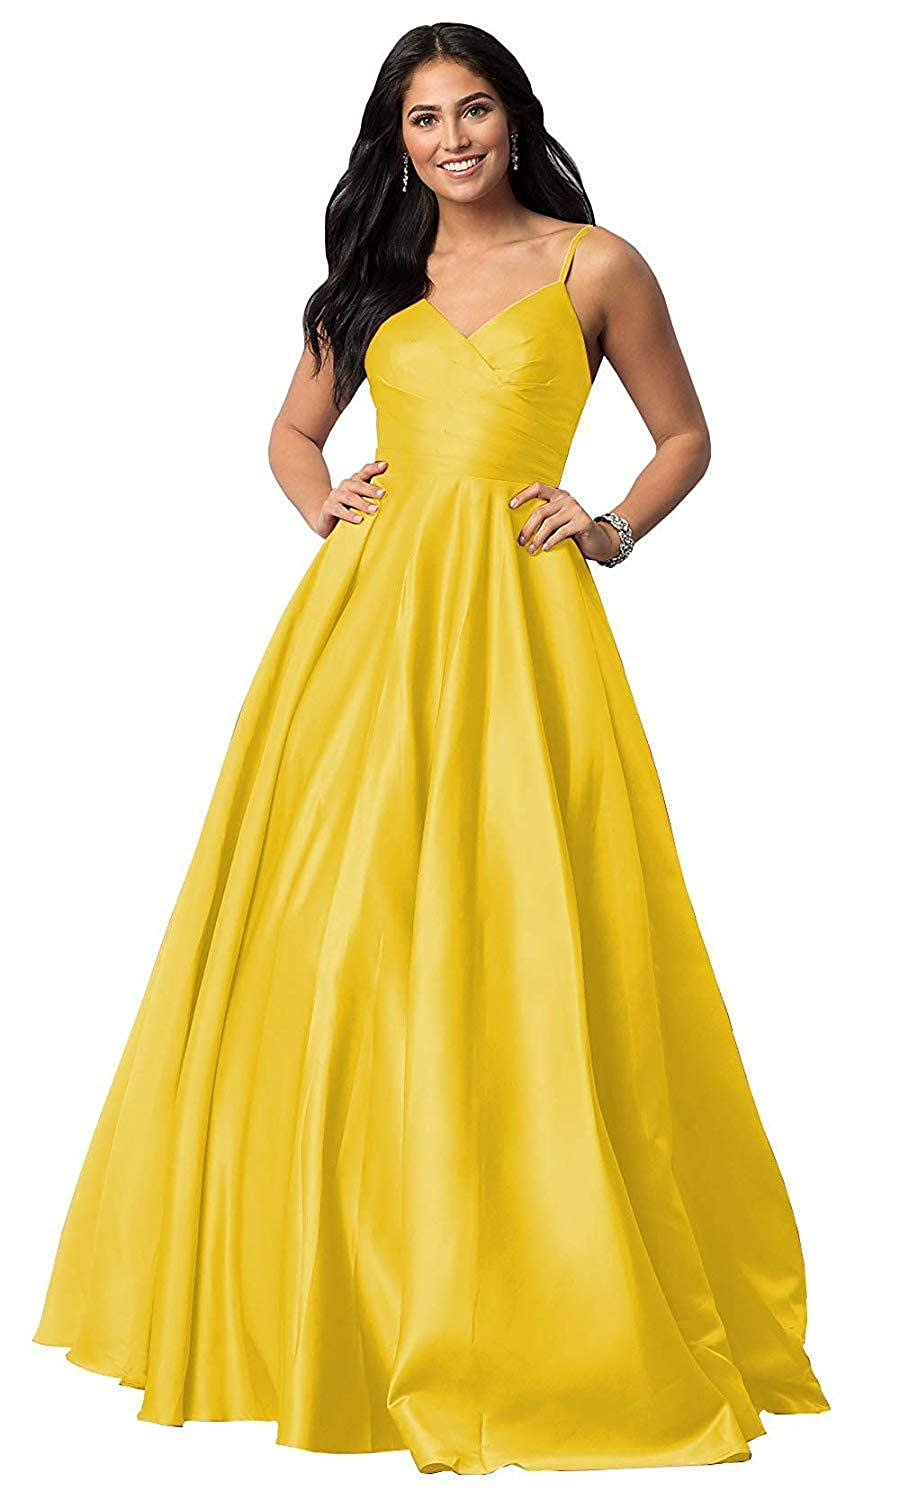 8572c1cd7dff Yellow TTdamai Prom Dresses V Neck Satin Spaghetti Strap A Line Formal  Evening Gowns with Pockets